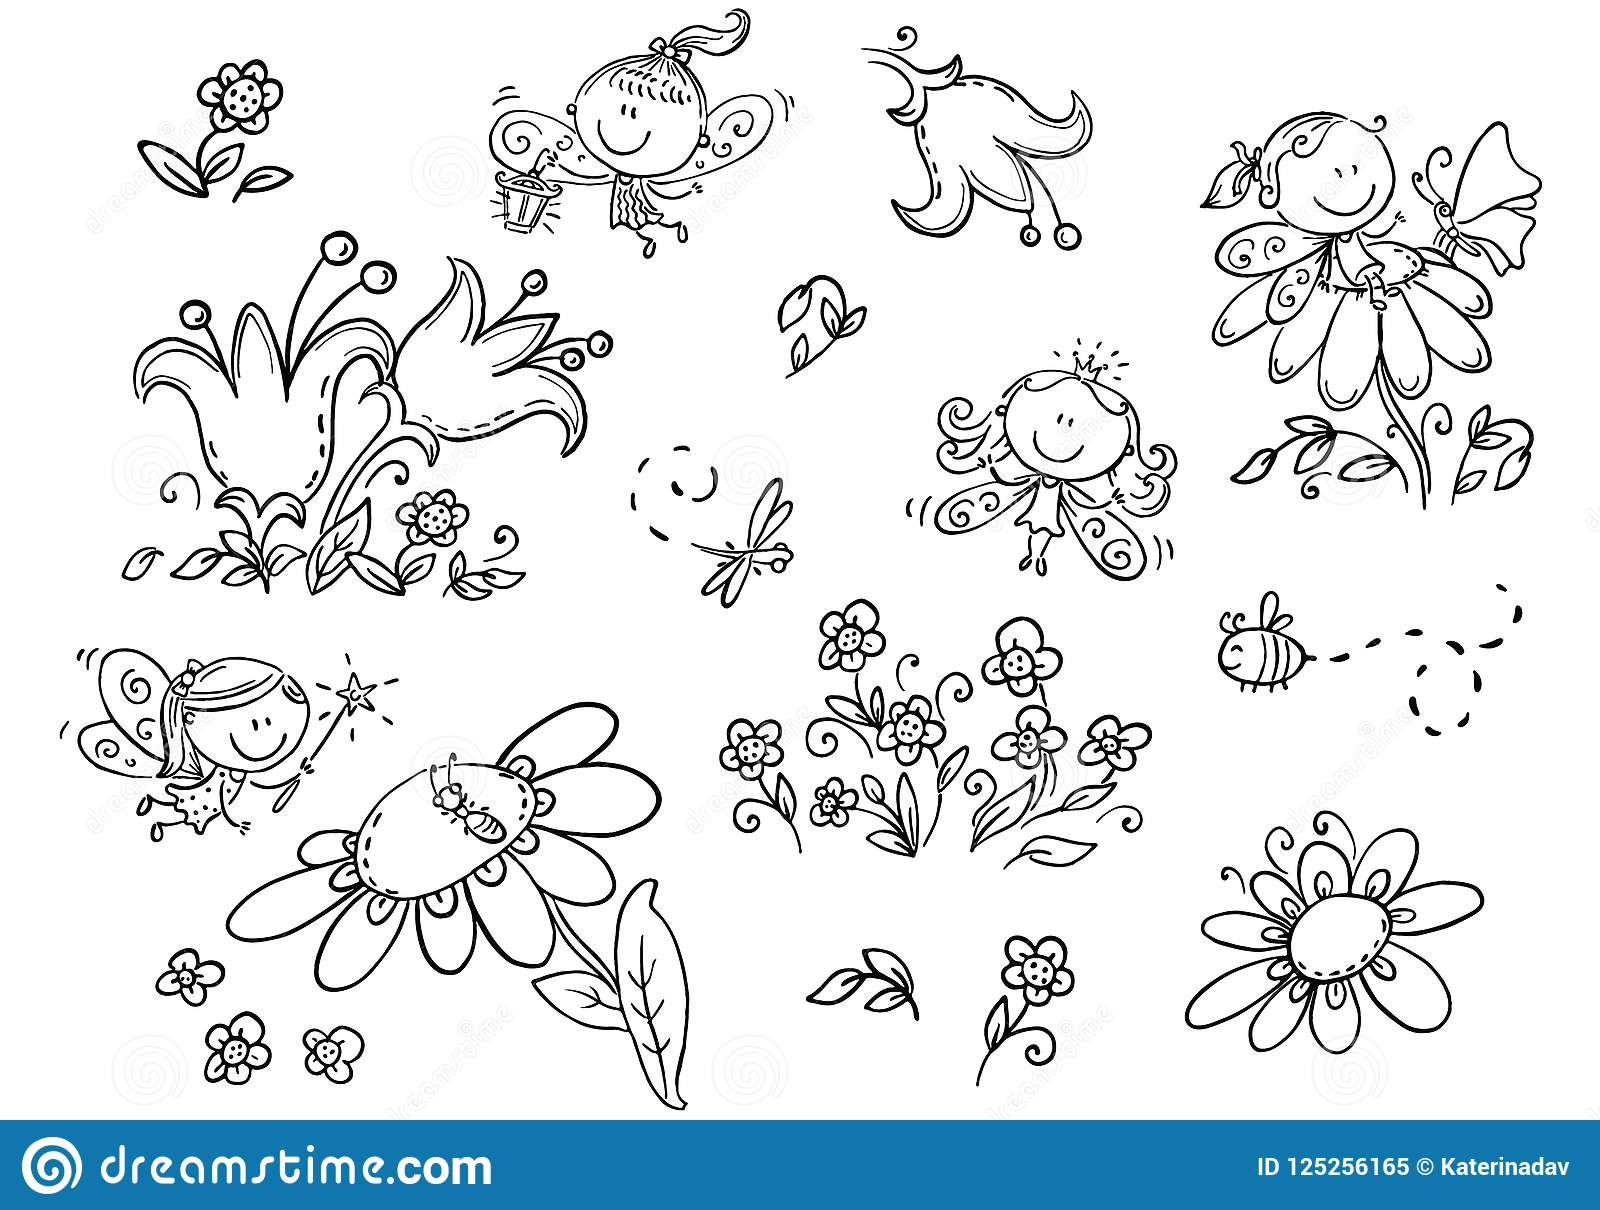 Set Of Cartoon Fairies Insects Flowers And Elements Black And